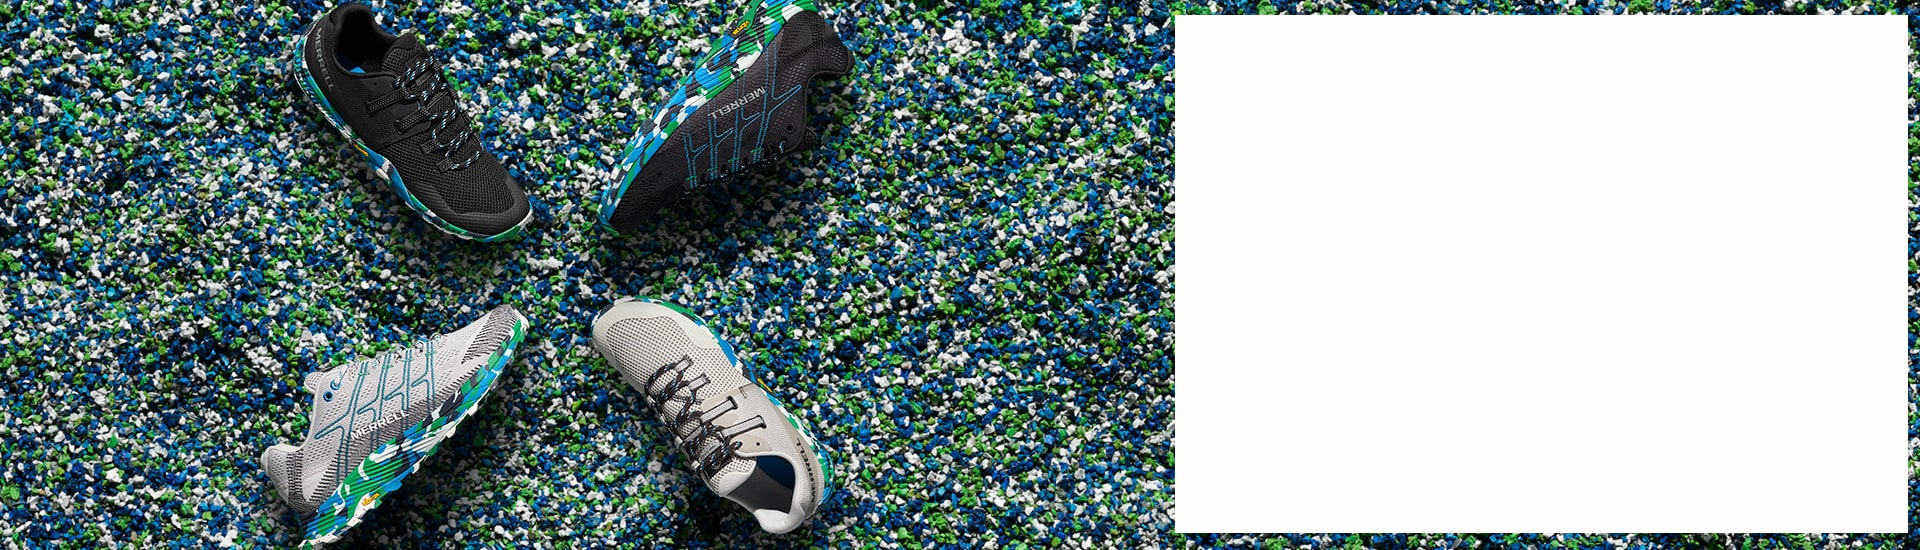 4 Merrell shoes on a colorful pattern.